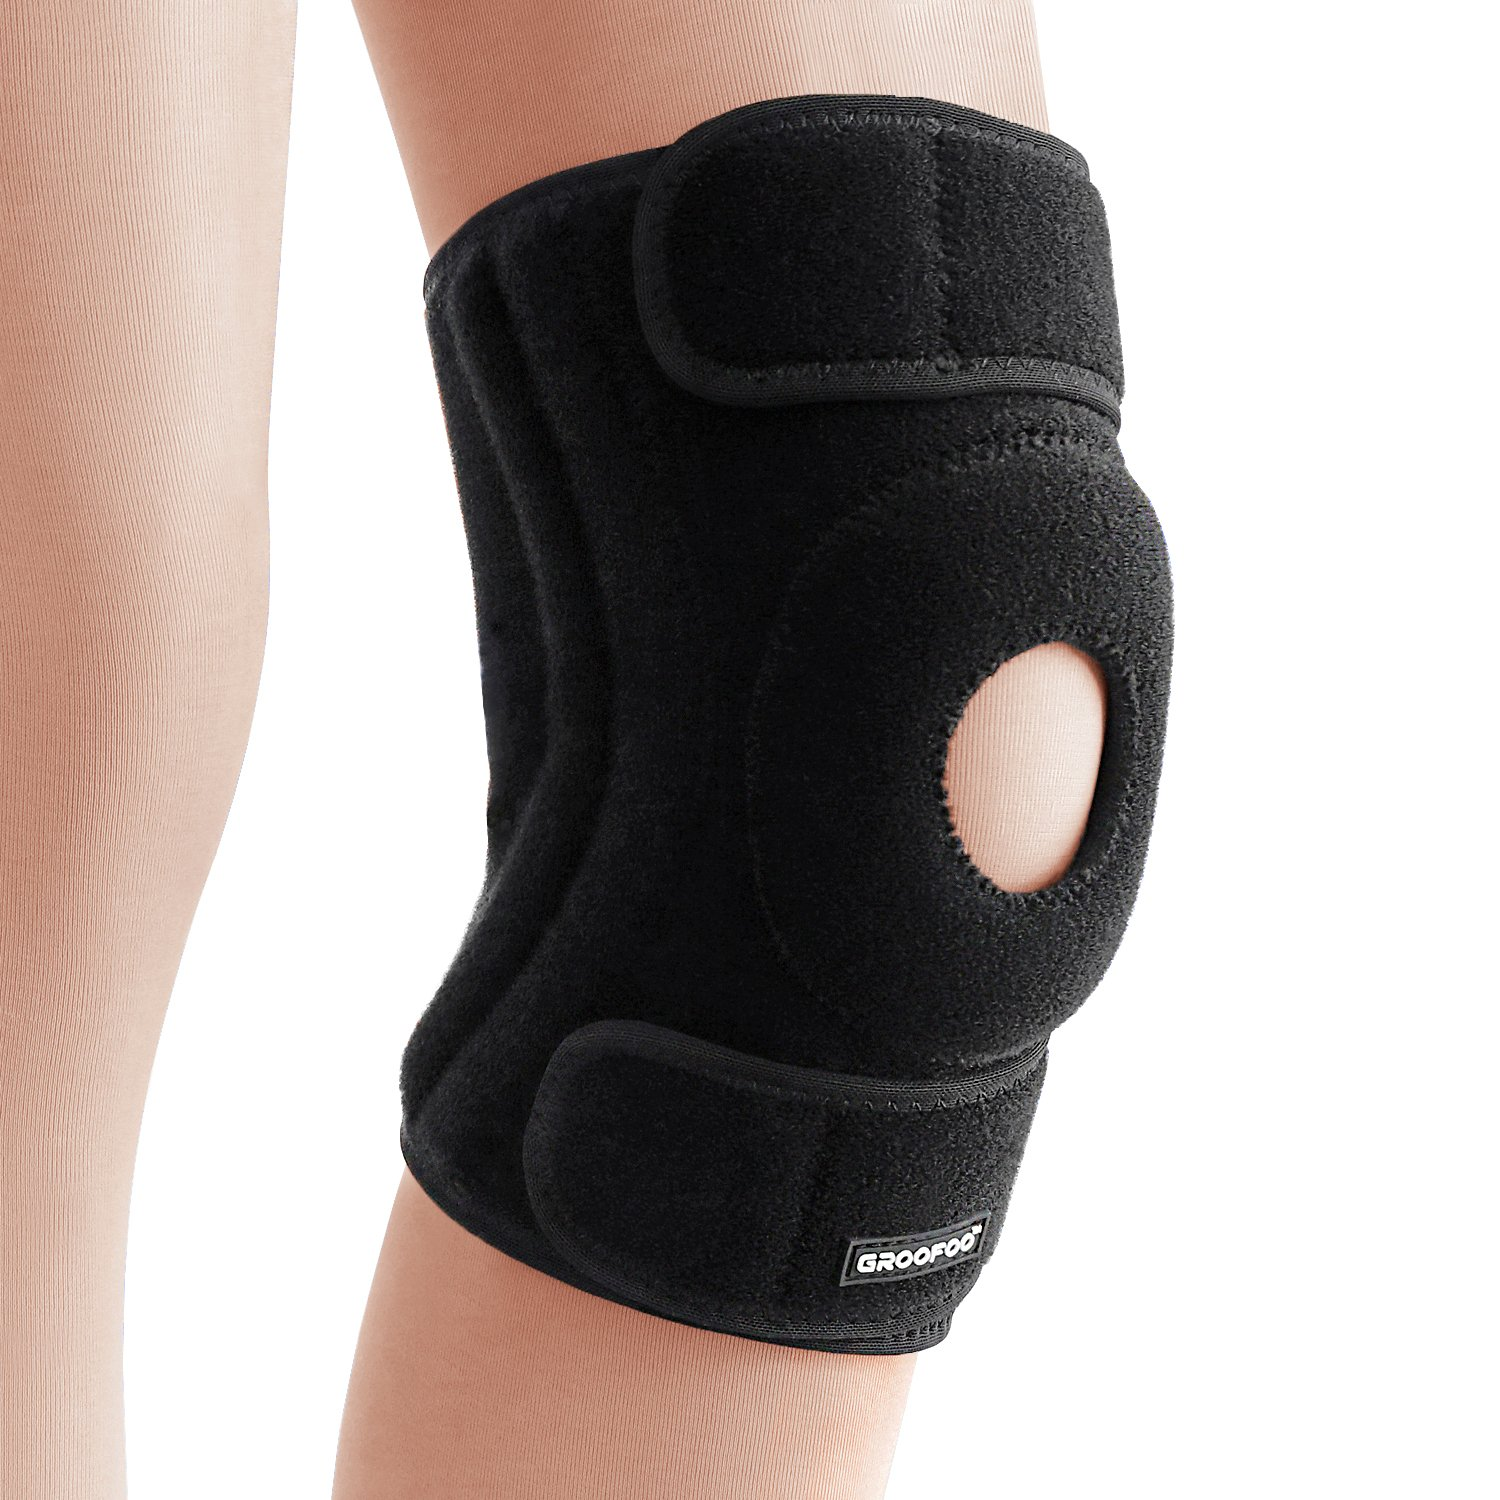 Adjustable knee brace support - GROOFOO Non-slip & Human mechanics Knee Brace Sleeve Wraps for Outdoor Activities, Tear, Bursitis, Arthritis, Joint Pain Relief, Injury Recovery - GF033